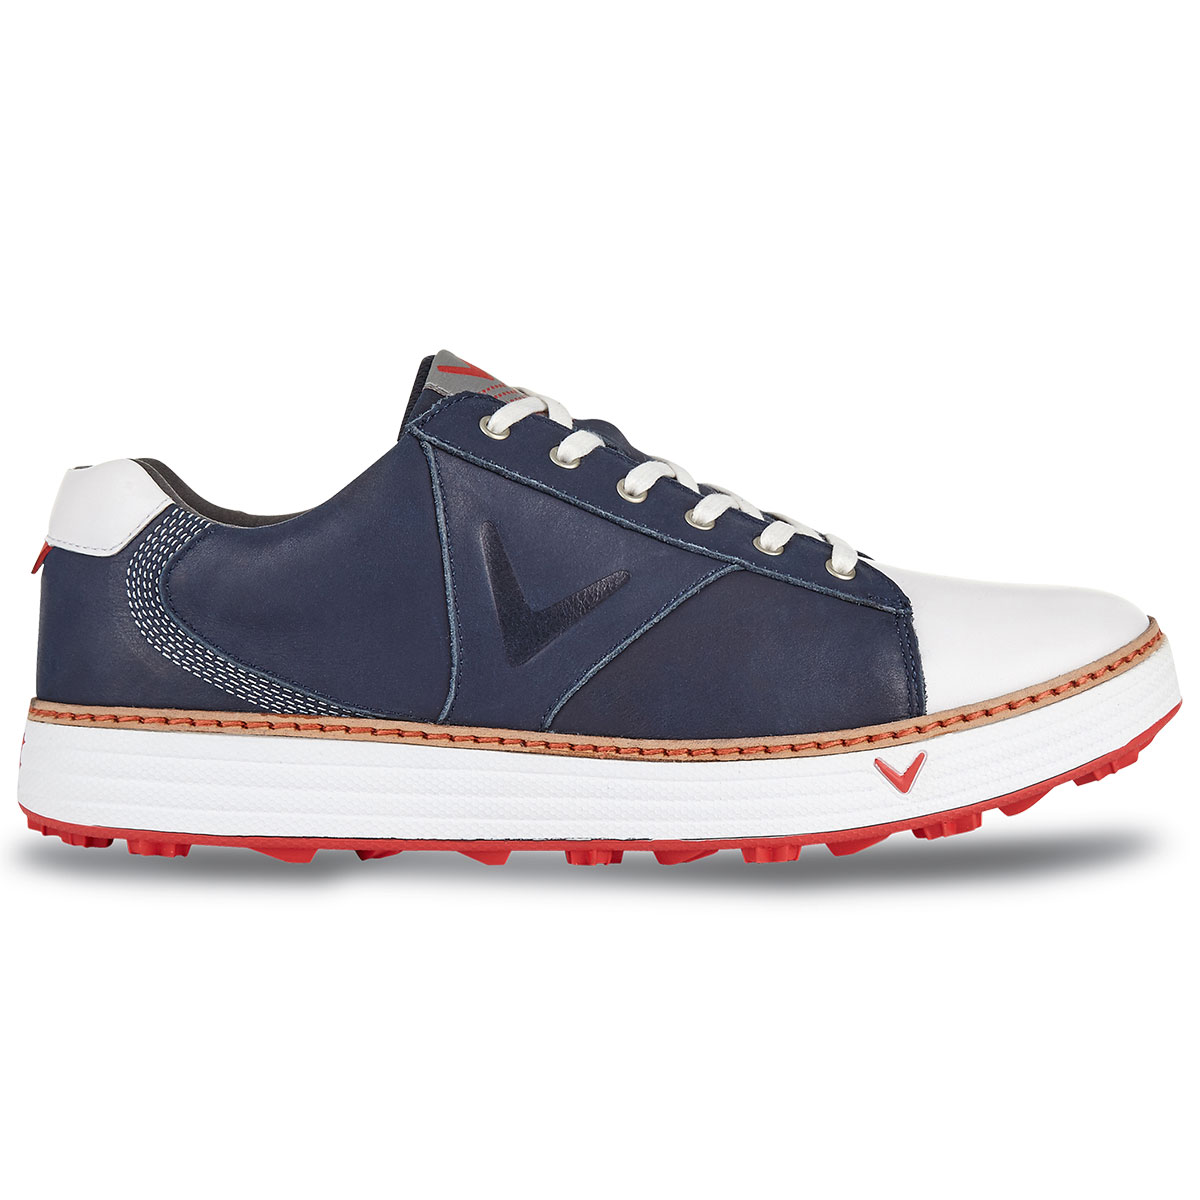 Callaway Del Mar Golf Shoes Uk